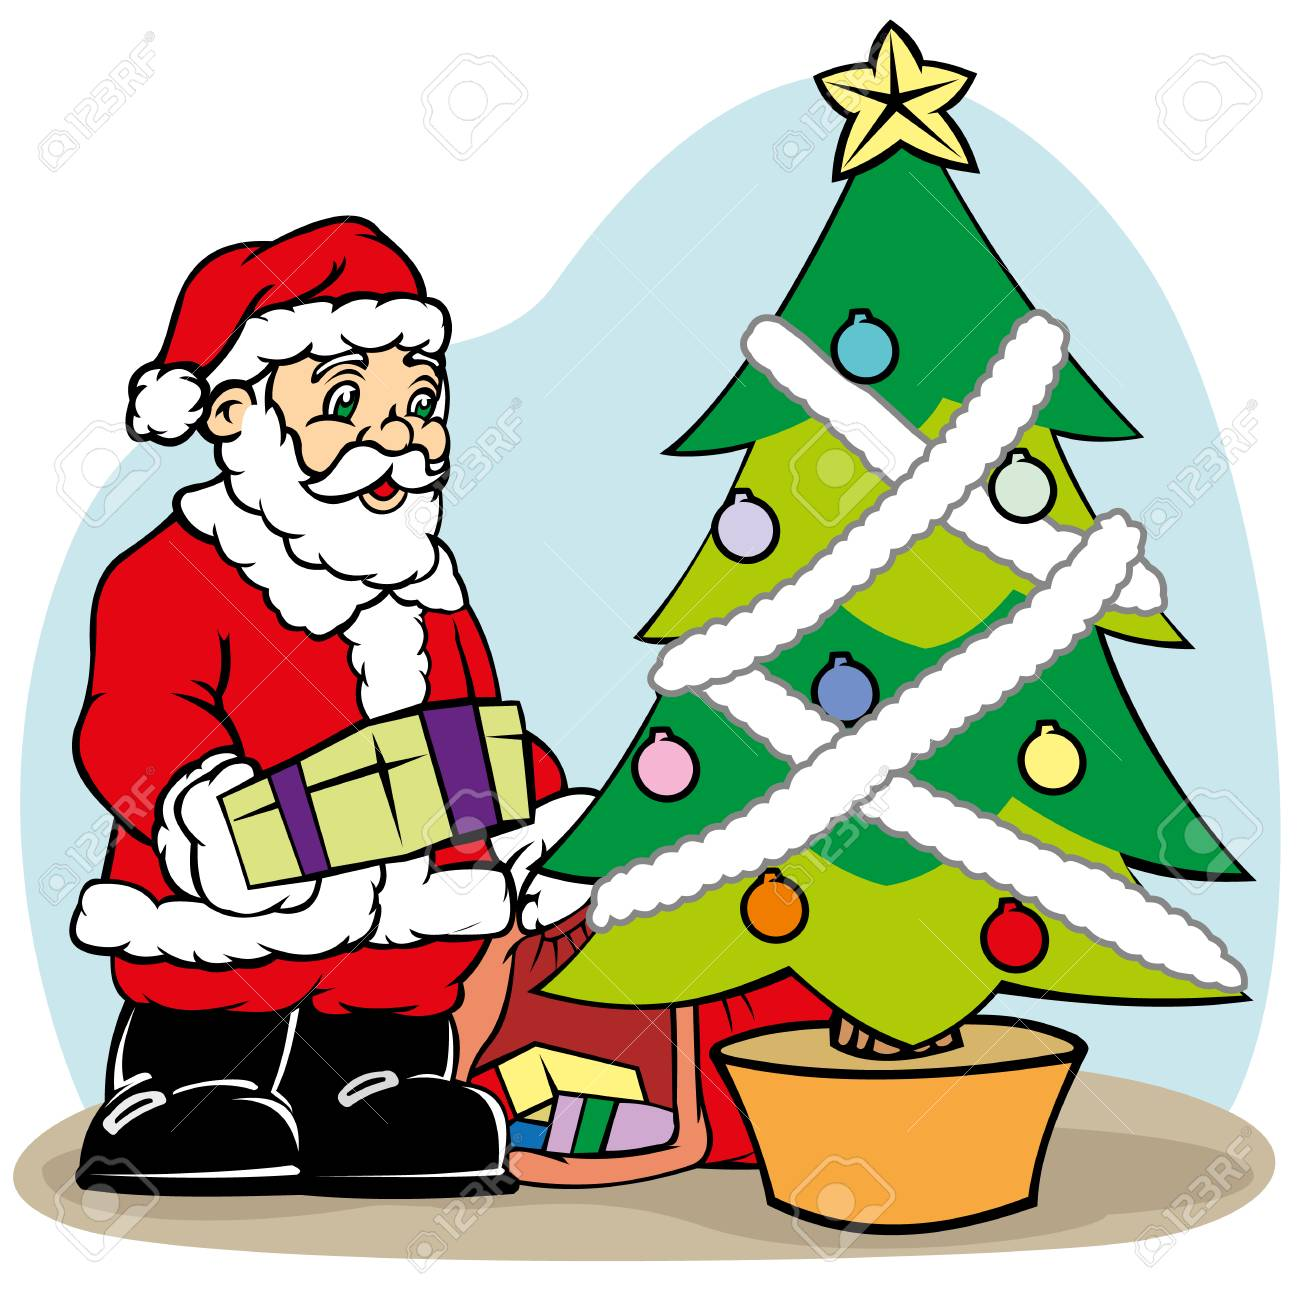 f0f72012bd2d1 Santa Claus putting the gift on the Christmas tree. Ideal for seasonal and Christmas  materials